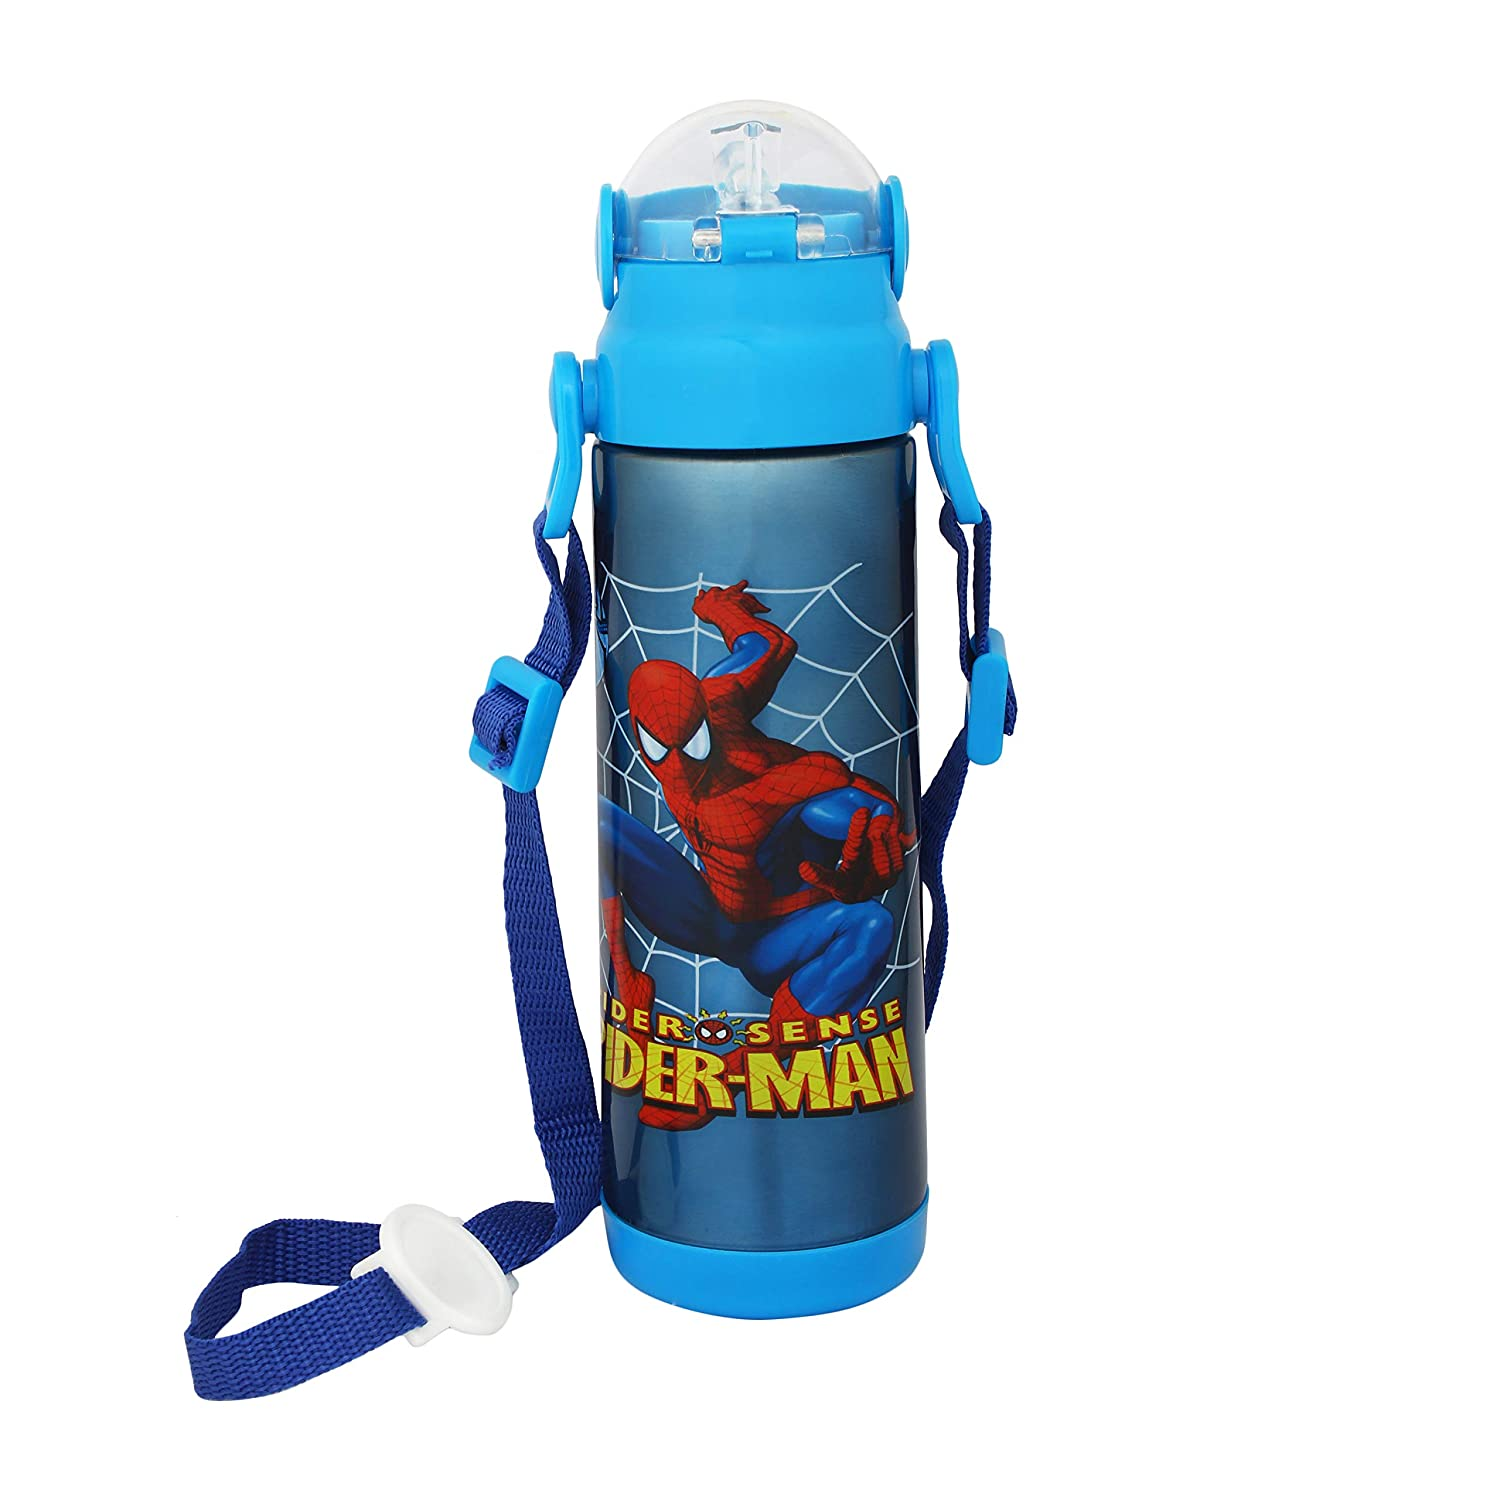 Buy Onlineworld Kid S Cartoon Printed Stainless Steel Bpa Free Sipper Water Bottle For School Flask Insulated Bottle Blue 500 Ml Online At Low Prices In India Amazon In